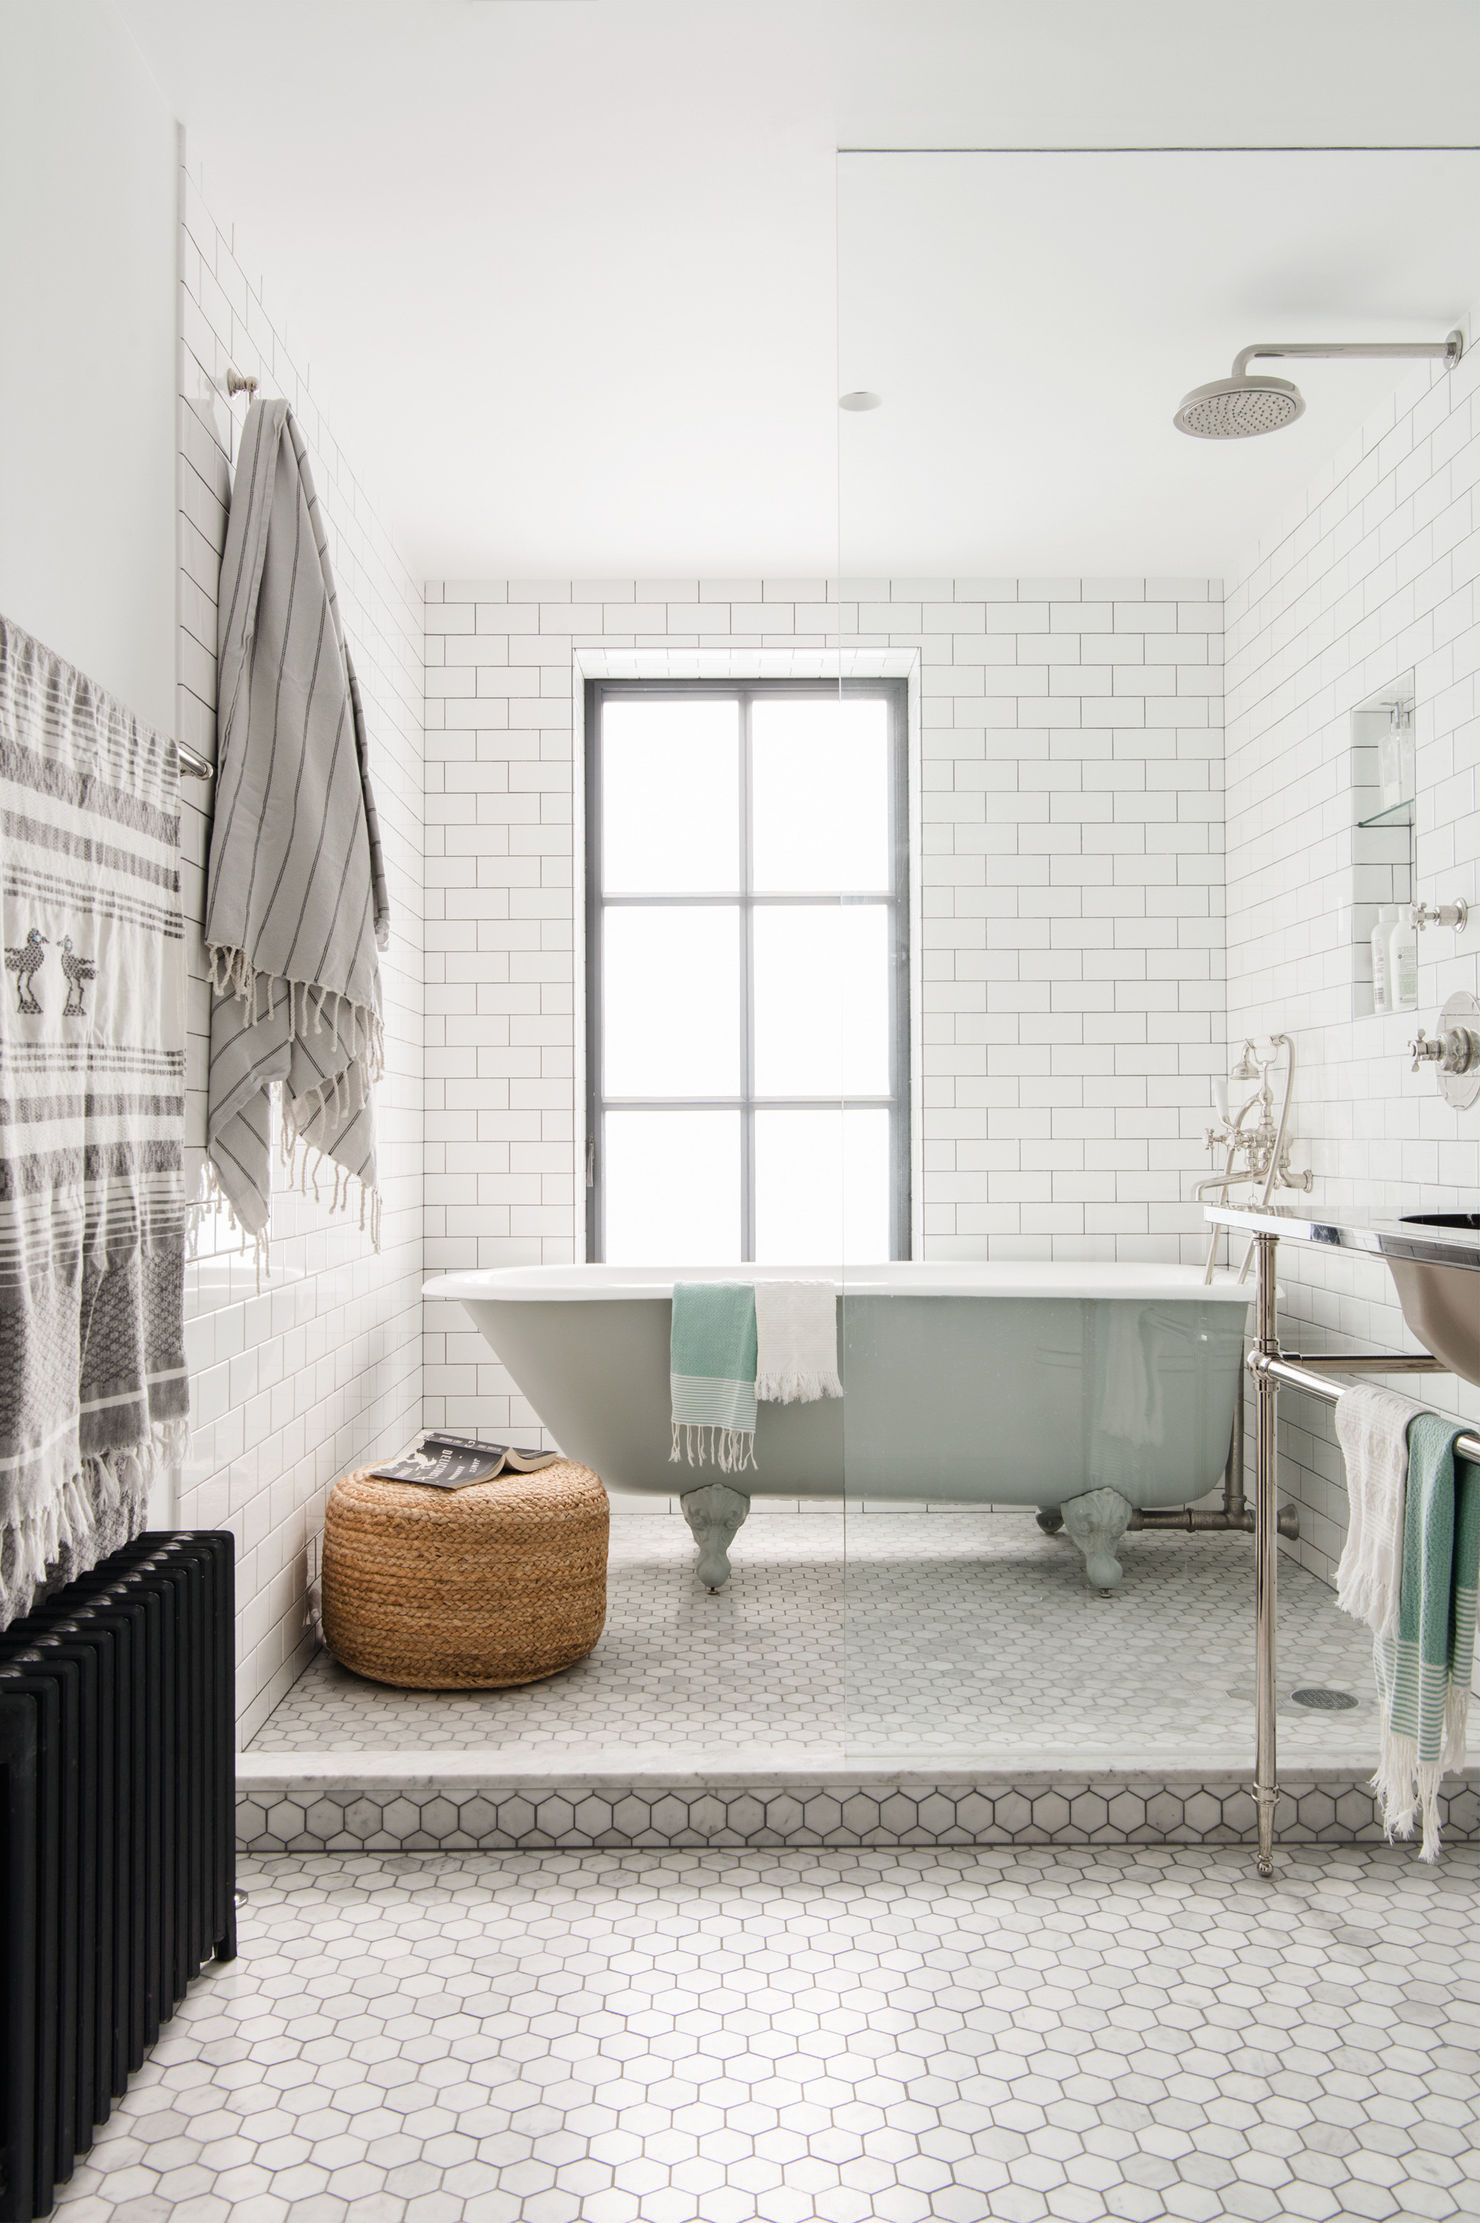 WET ROOMS ARE HAVING A MOMENT | Bathrooms | Pinterest | Wet rooms ...